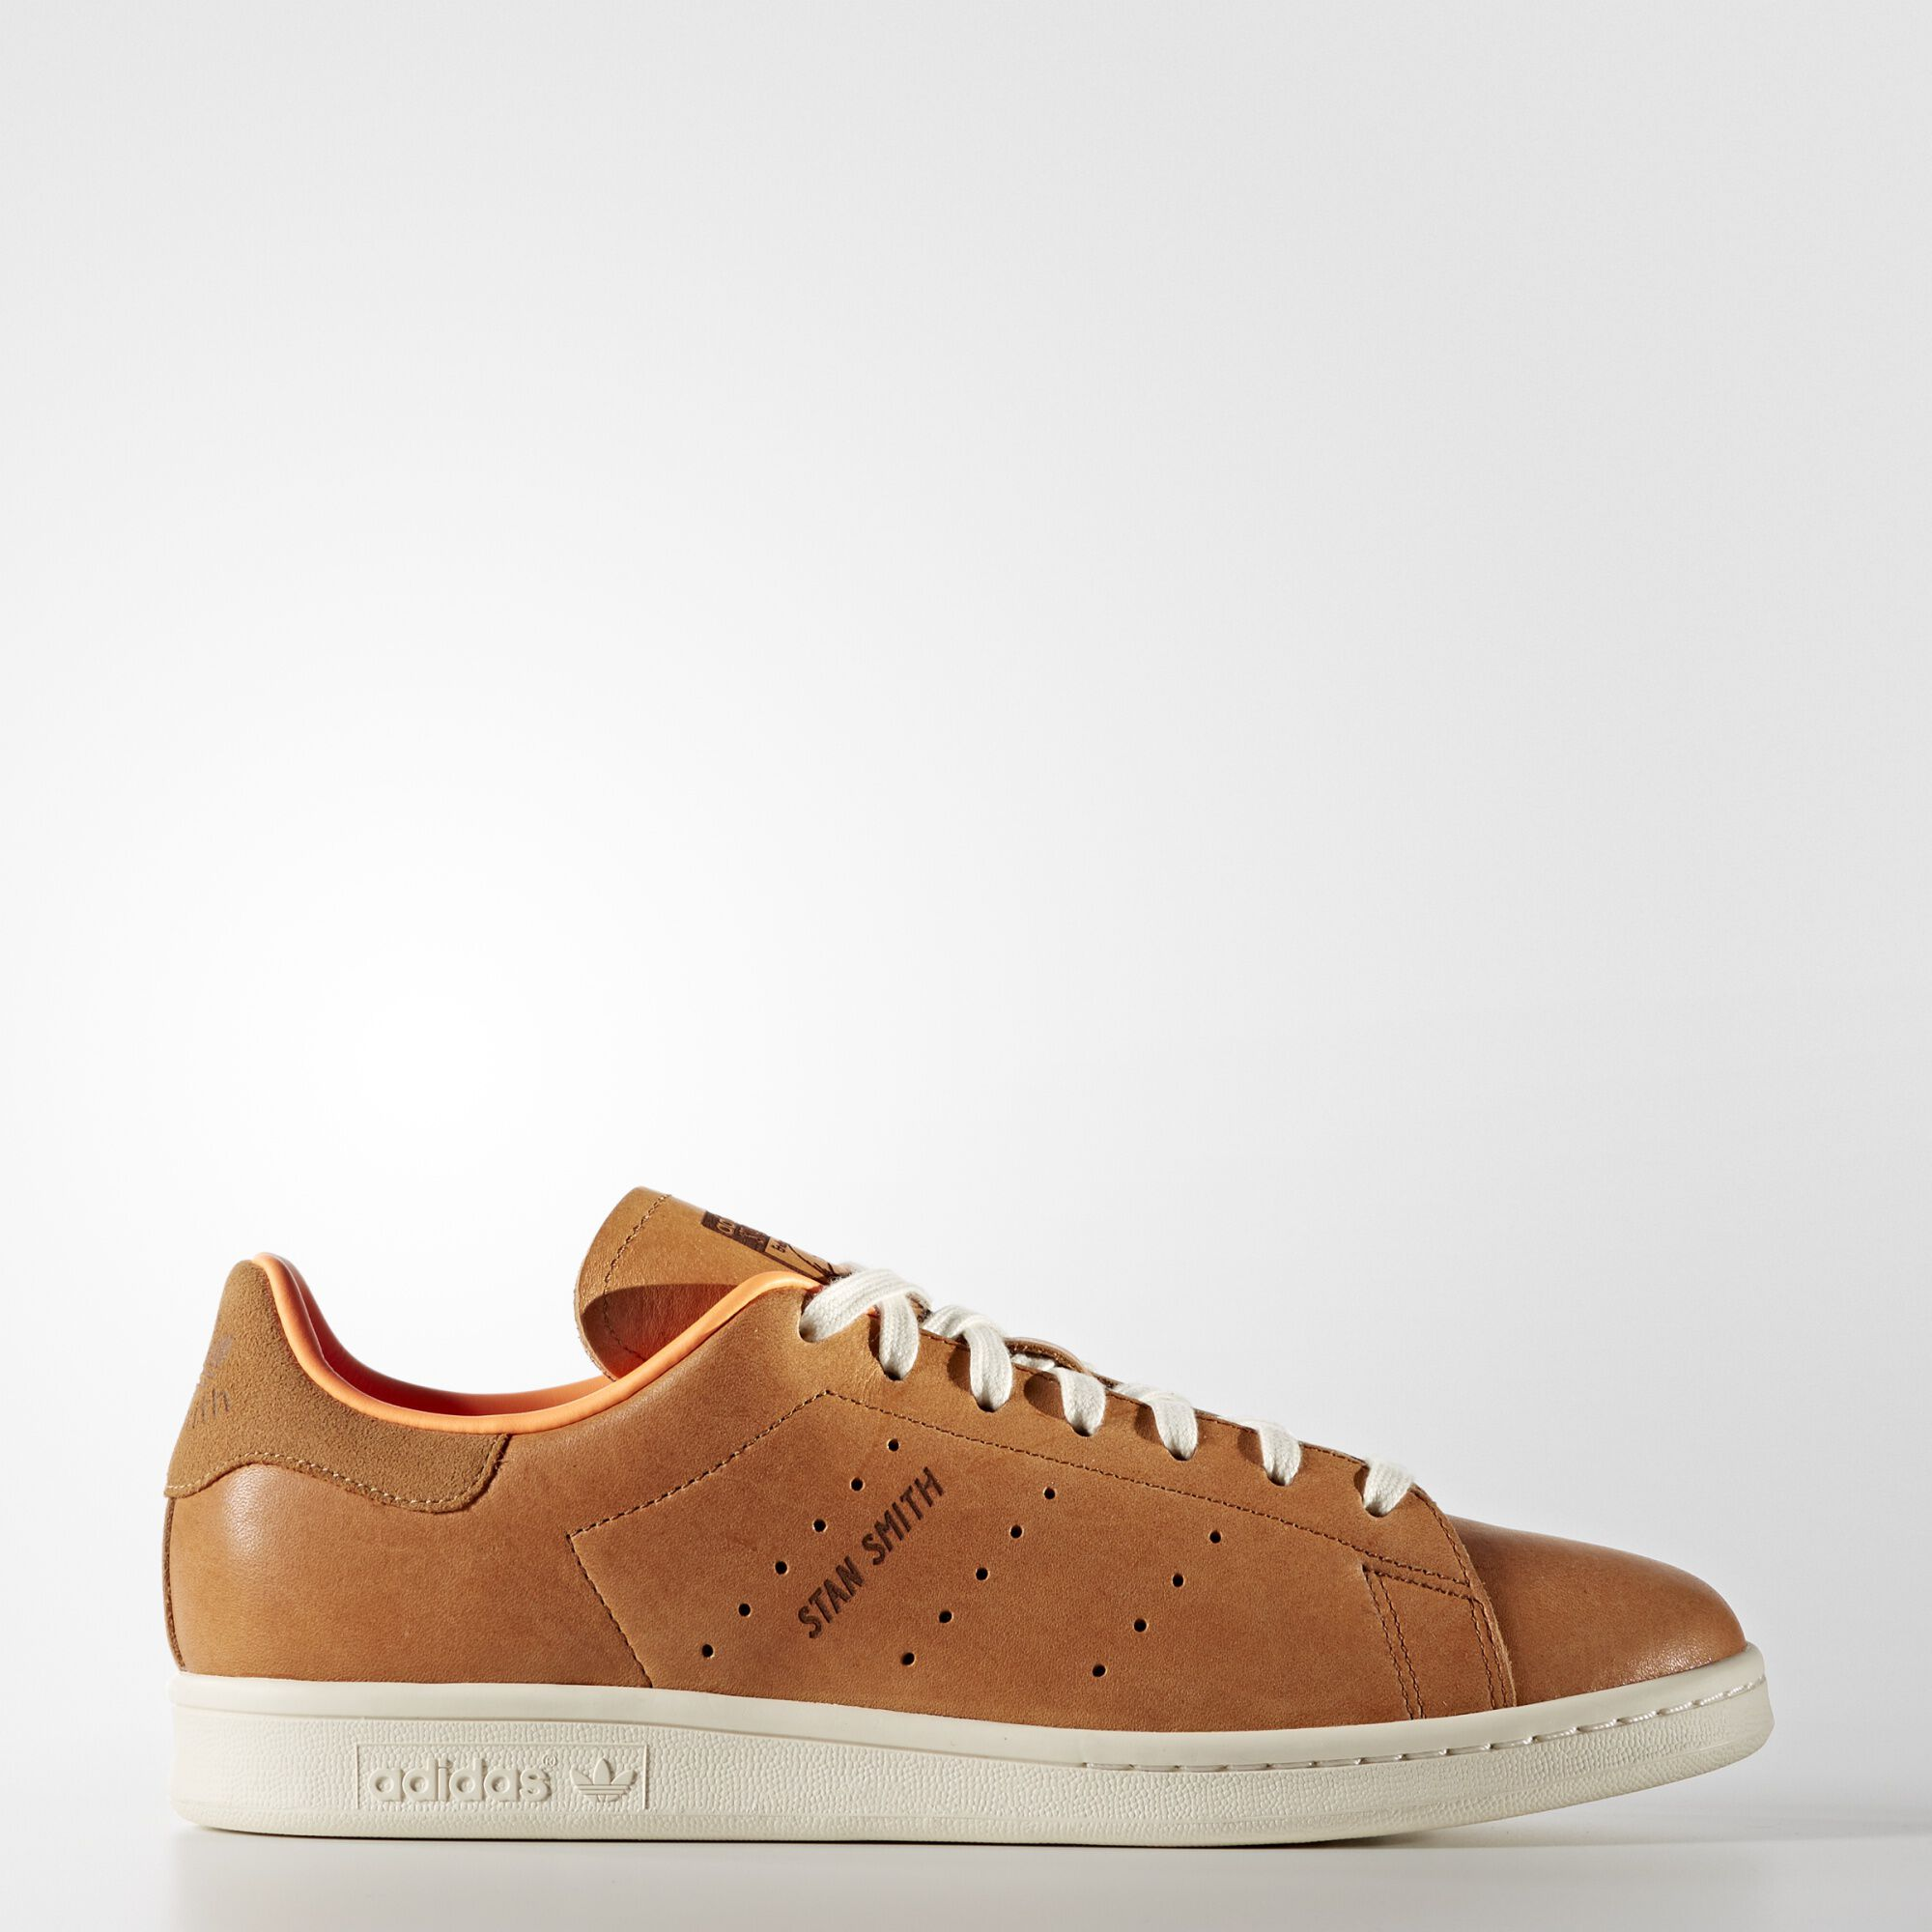 9fef5d8f59c1 Buy adidas stan smith brown leather   OFF76% Discounted